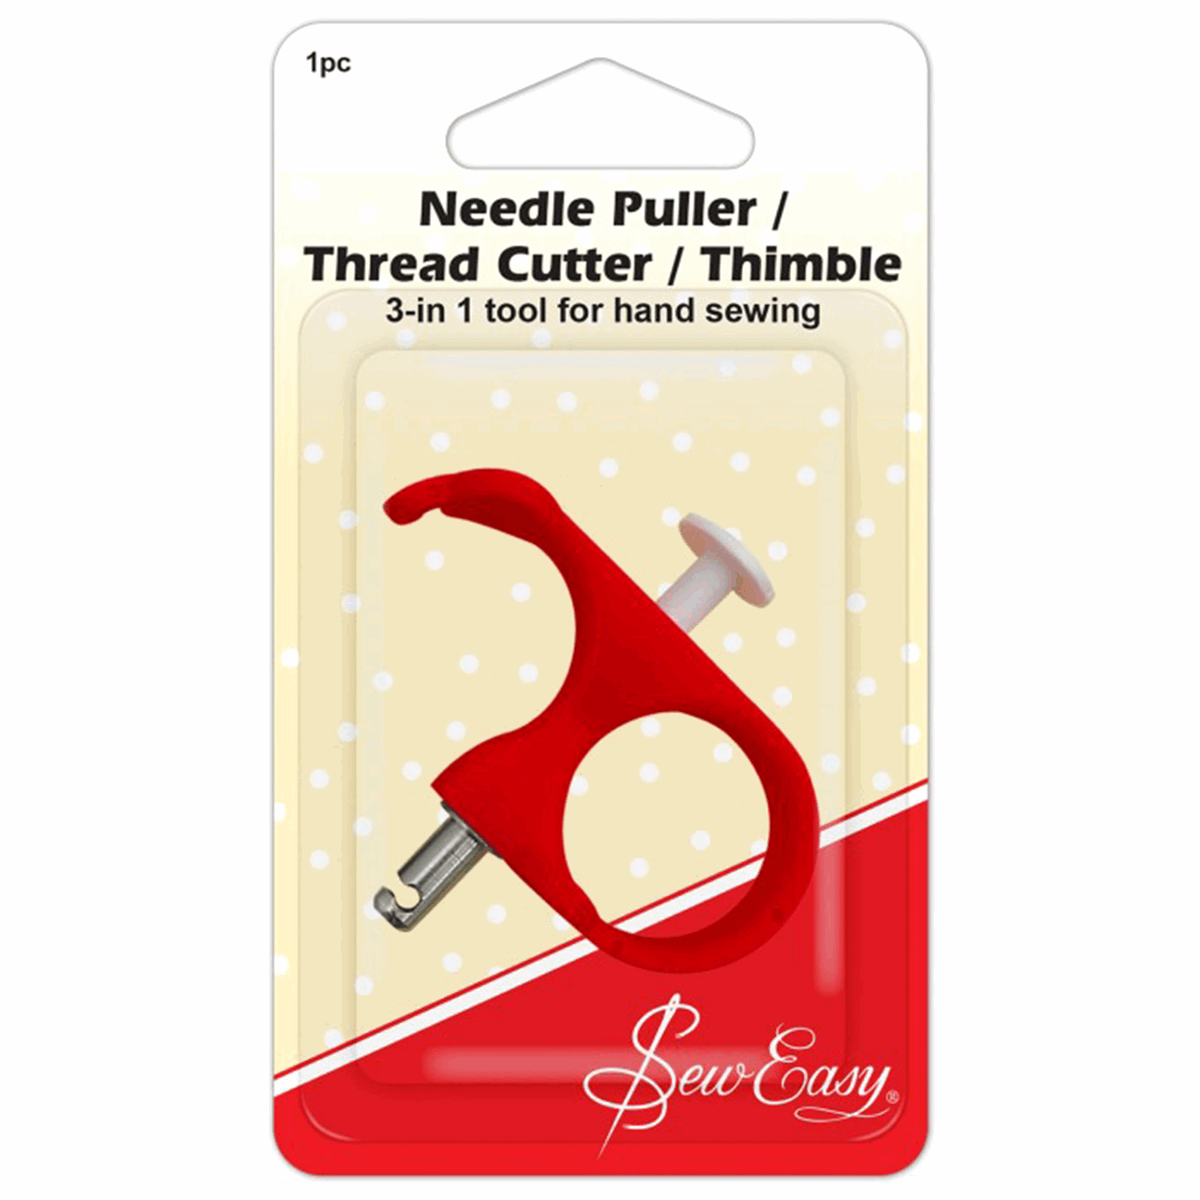 Sew Easy 3-in-1 Thimble/Cutter/Puller Tool